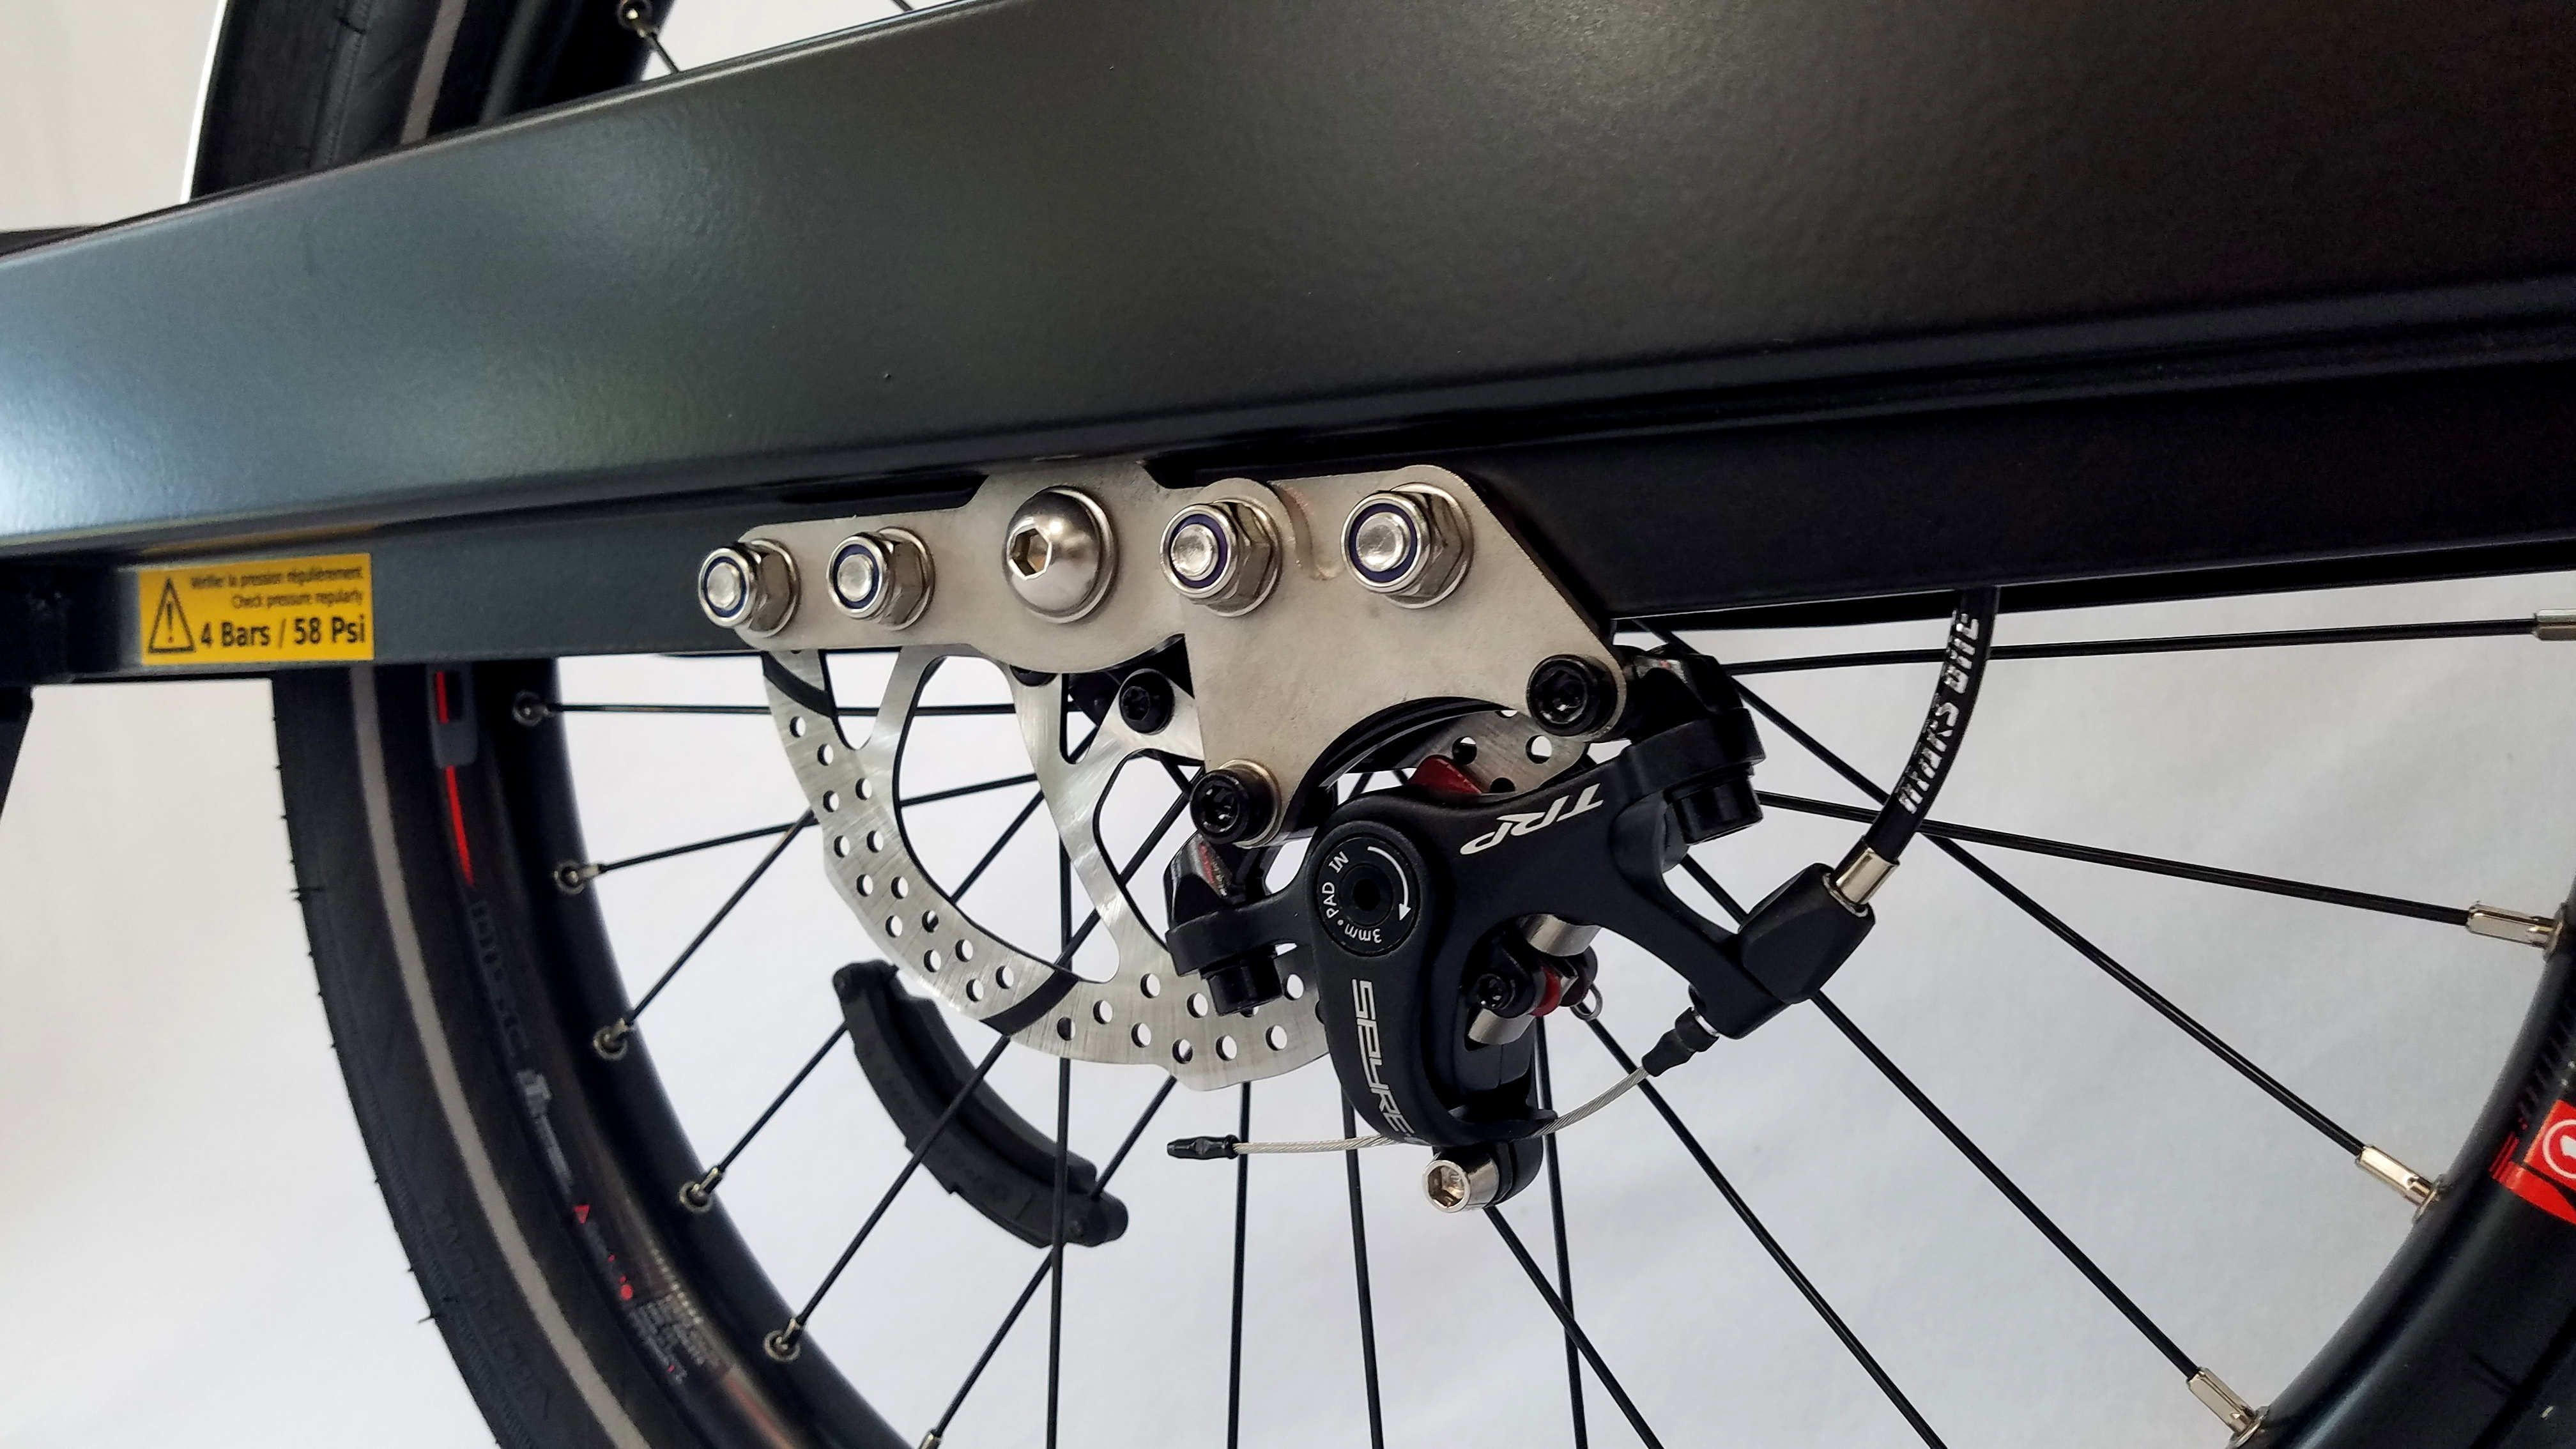 Bike trailer wheel with disc brakes and a reelight magnet on the spokes mounted to the frame of the trailer